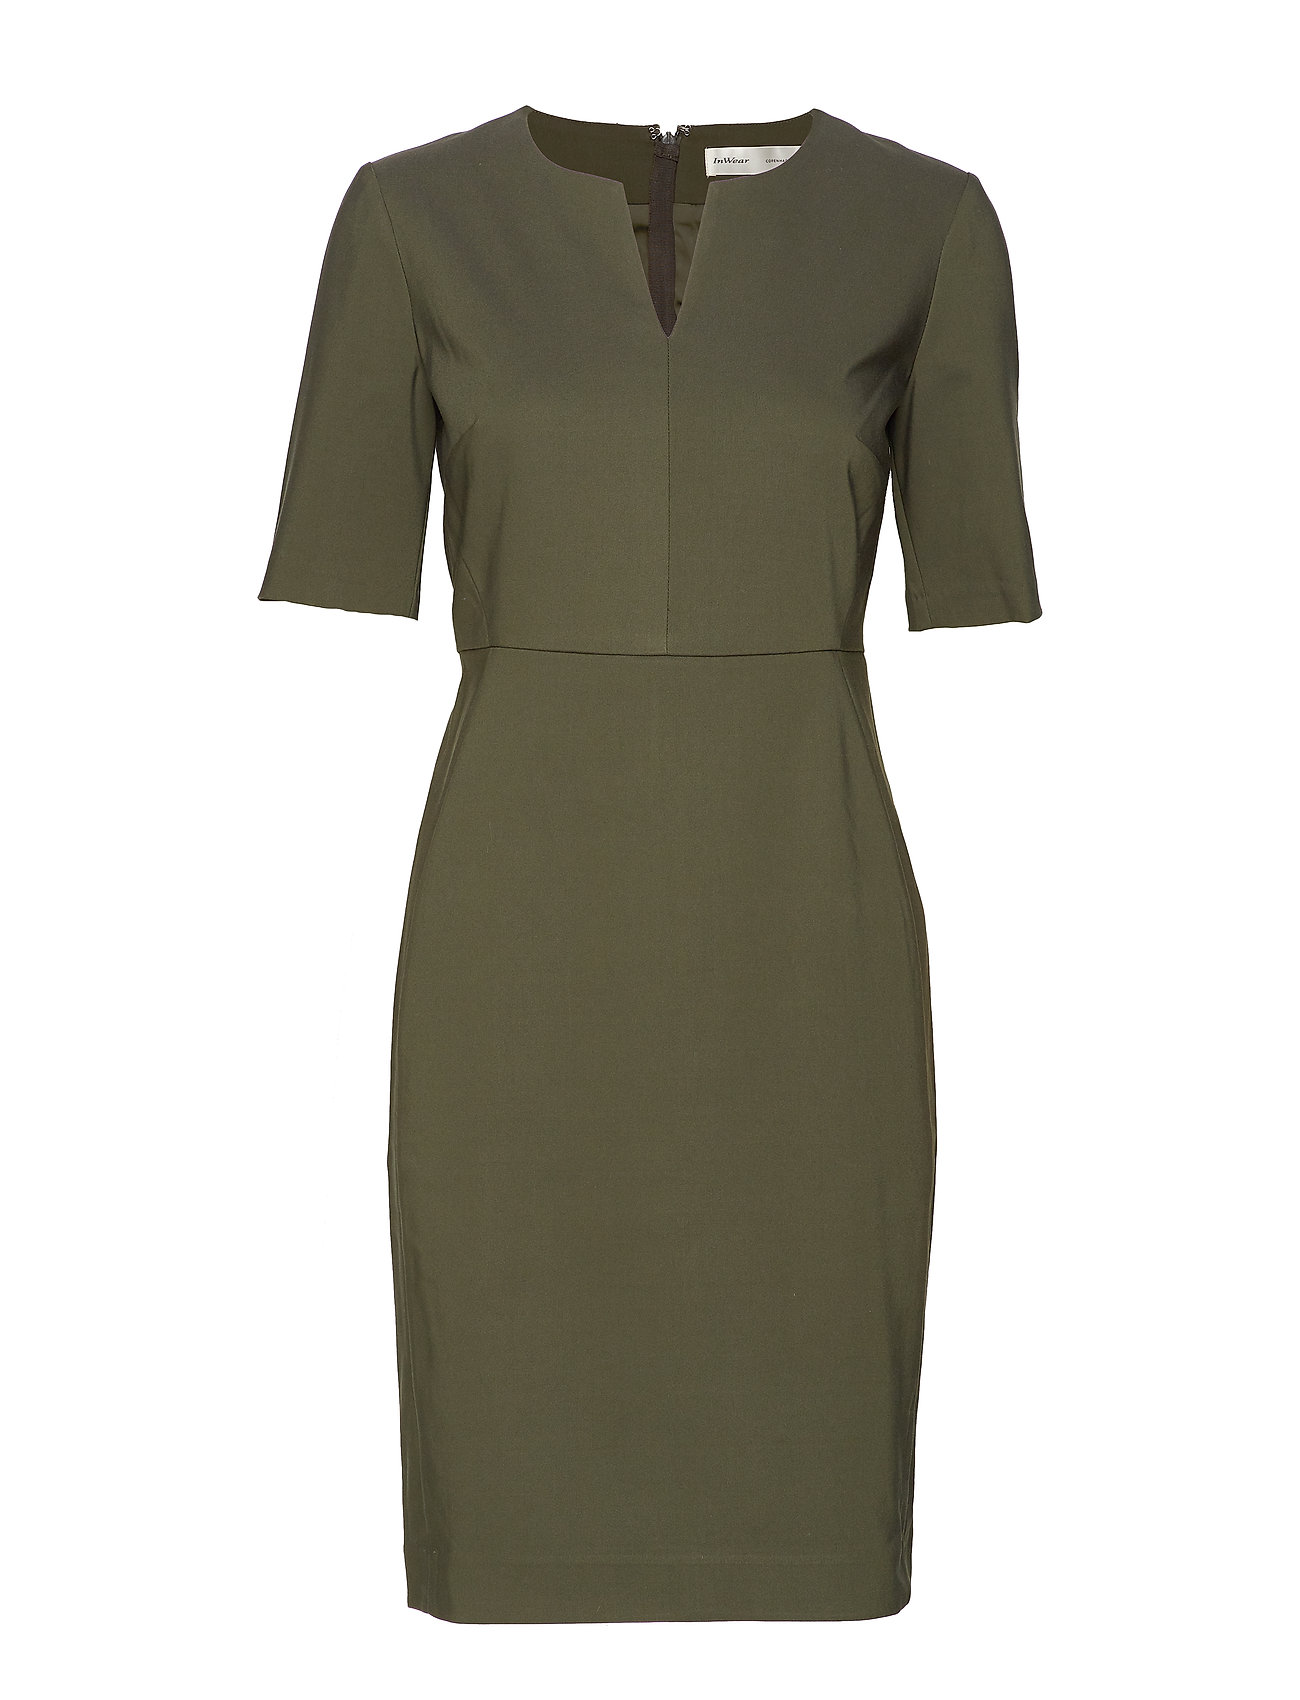 InWear Zella Dress - OLIVE LEAF